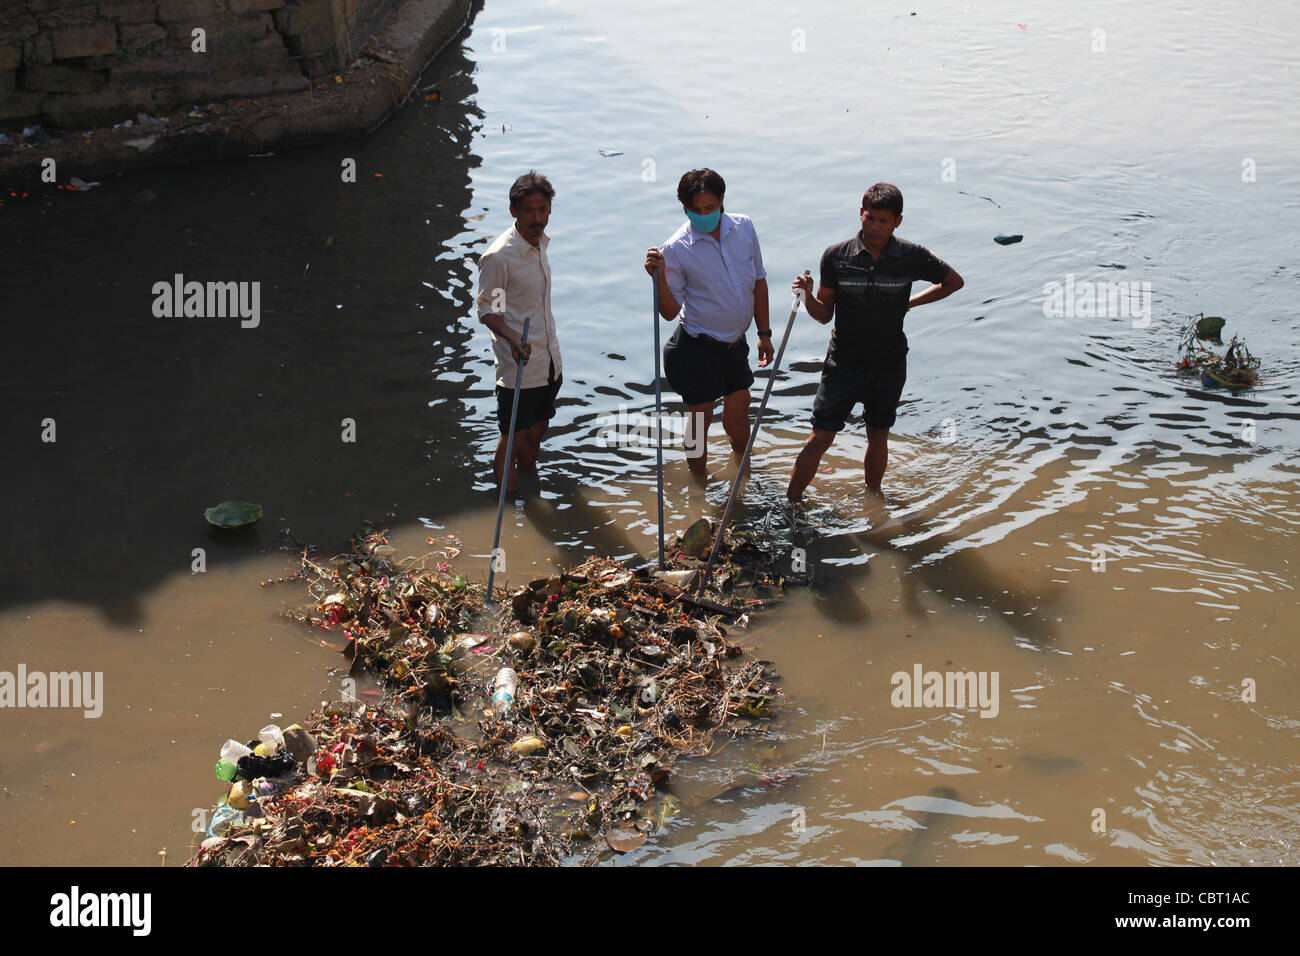 Workers unclogg river of pollution and debris from funerary ceremonies at Pashupatinath, Kathmandhu - Stock Image